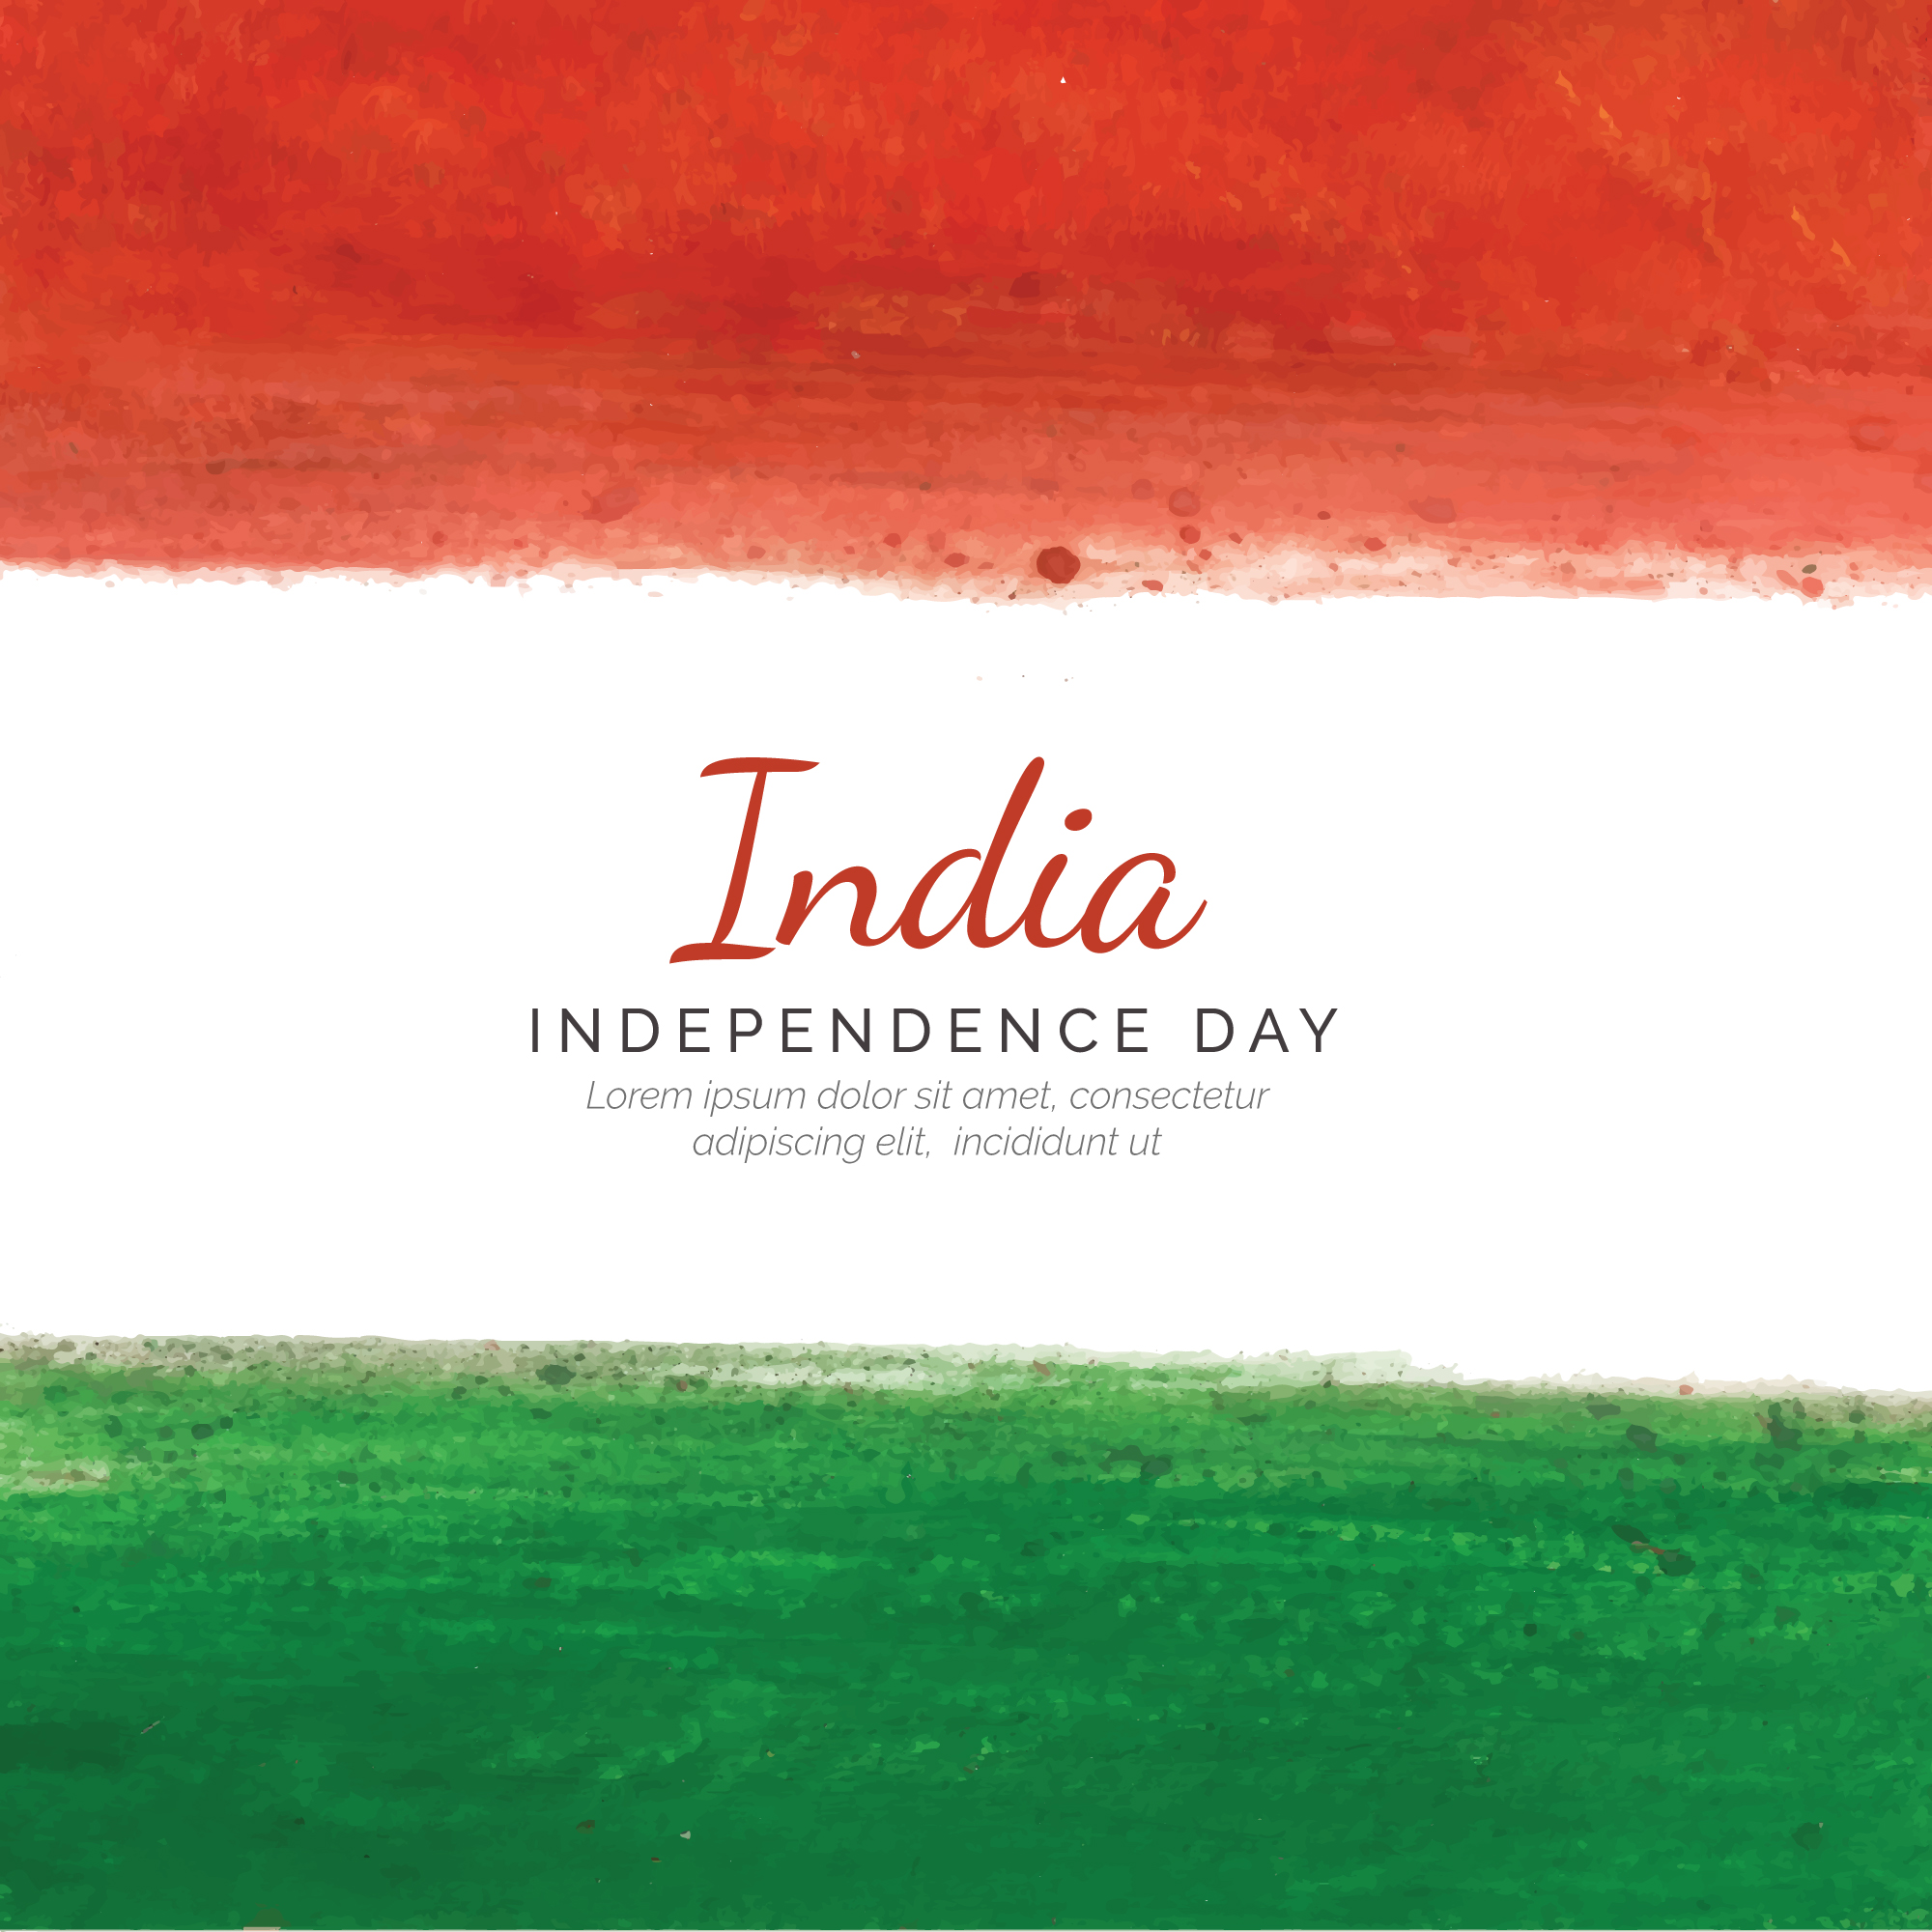 India independende day background